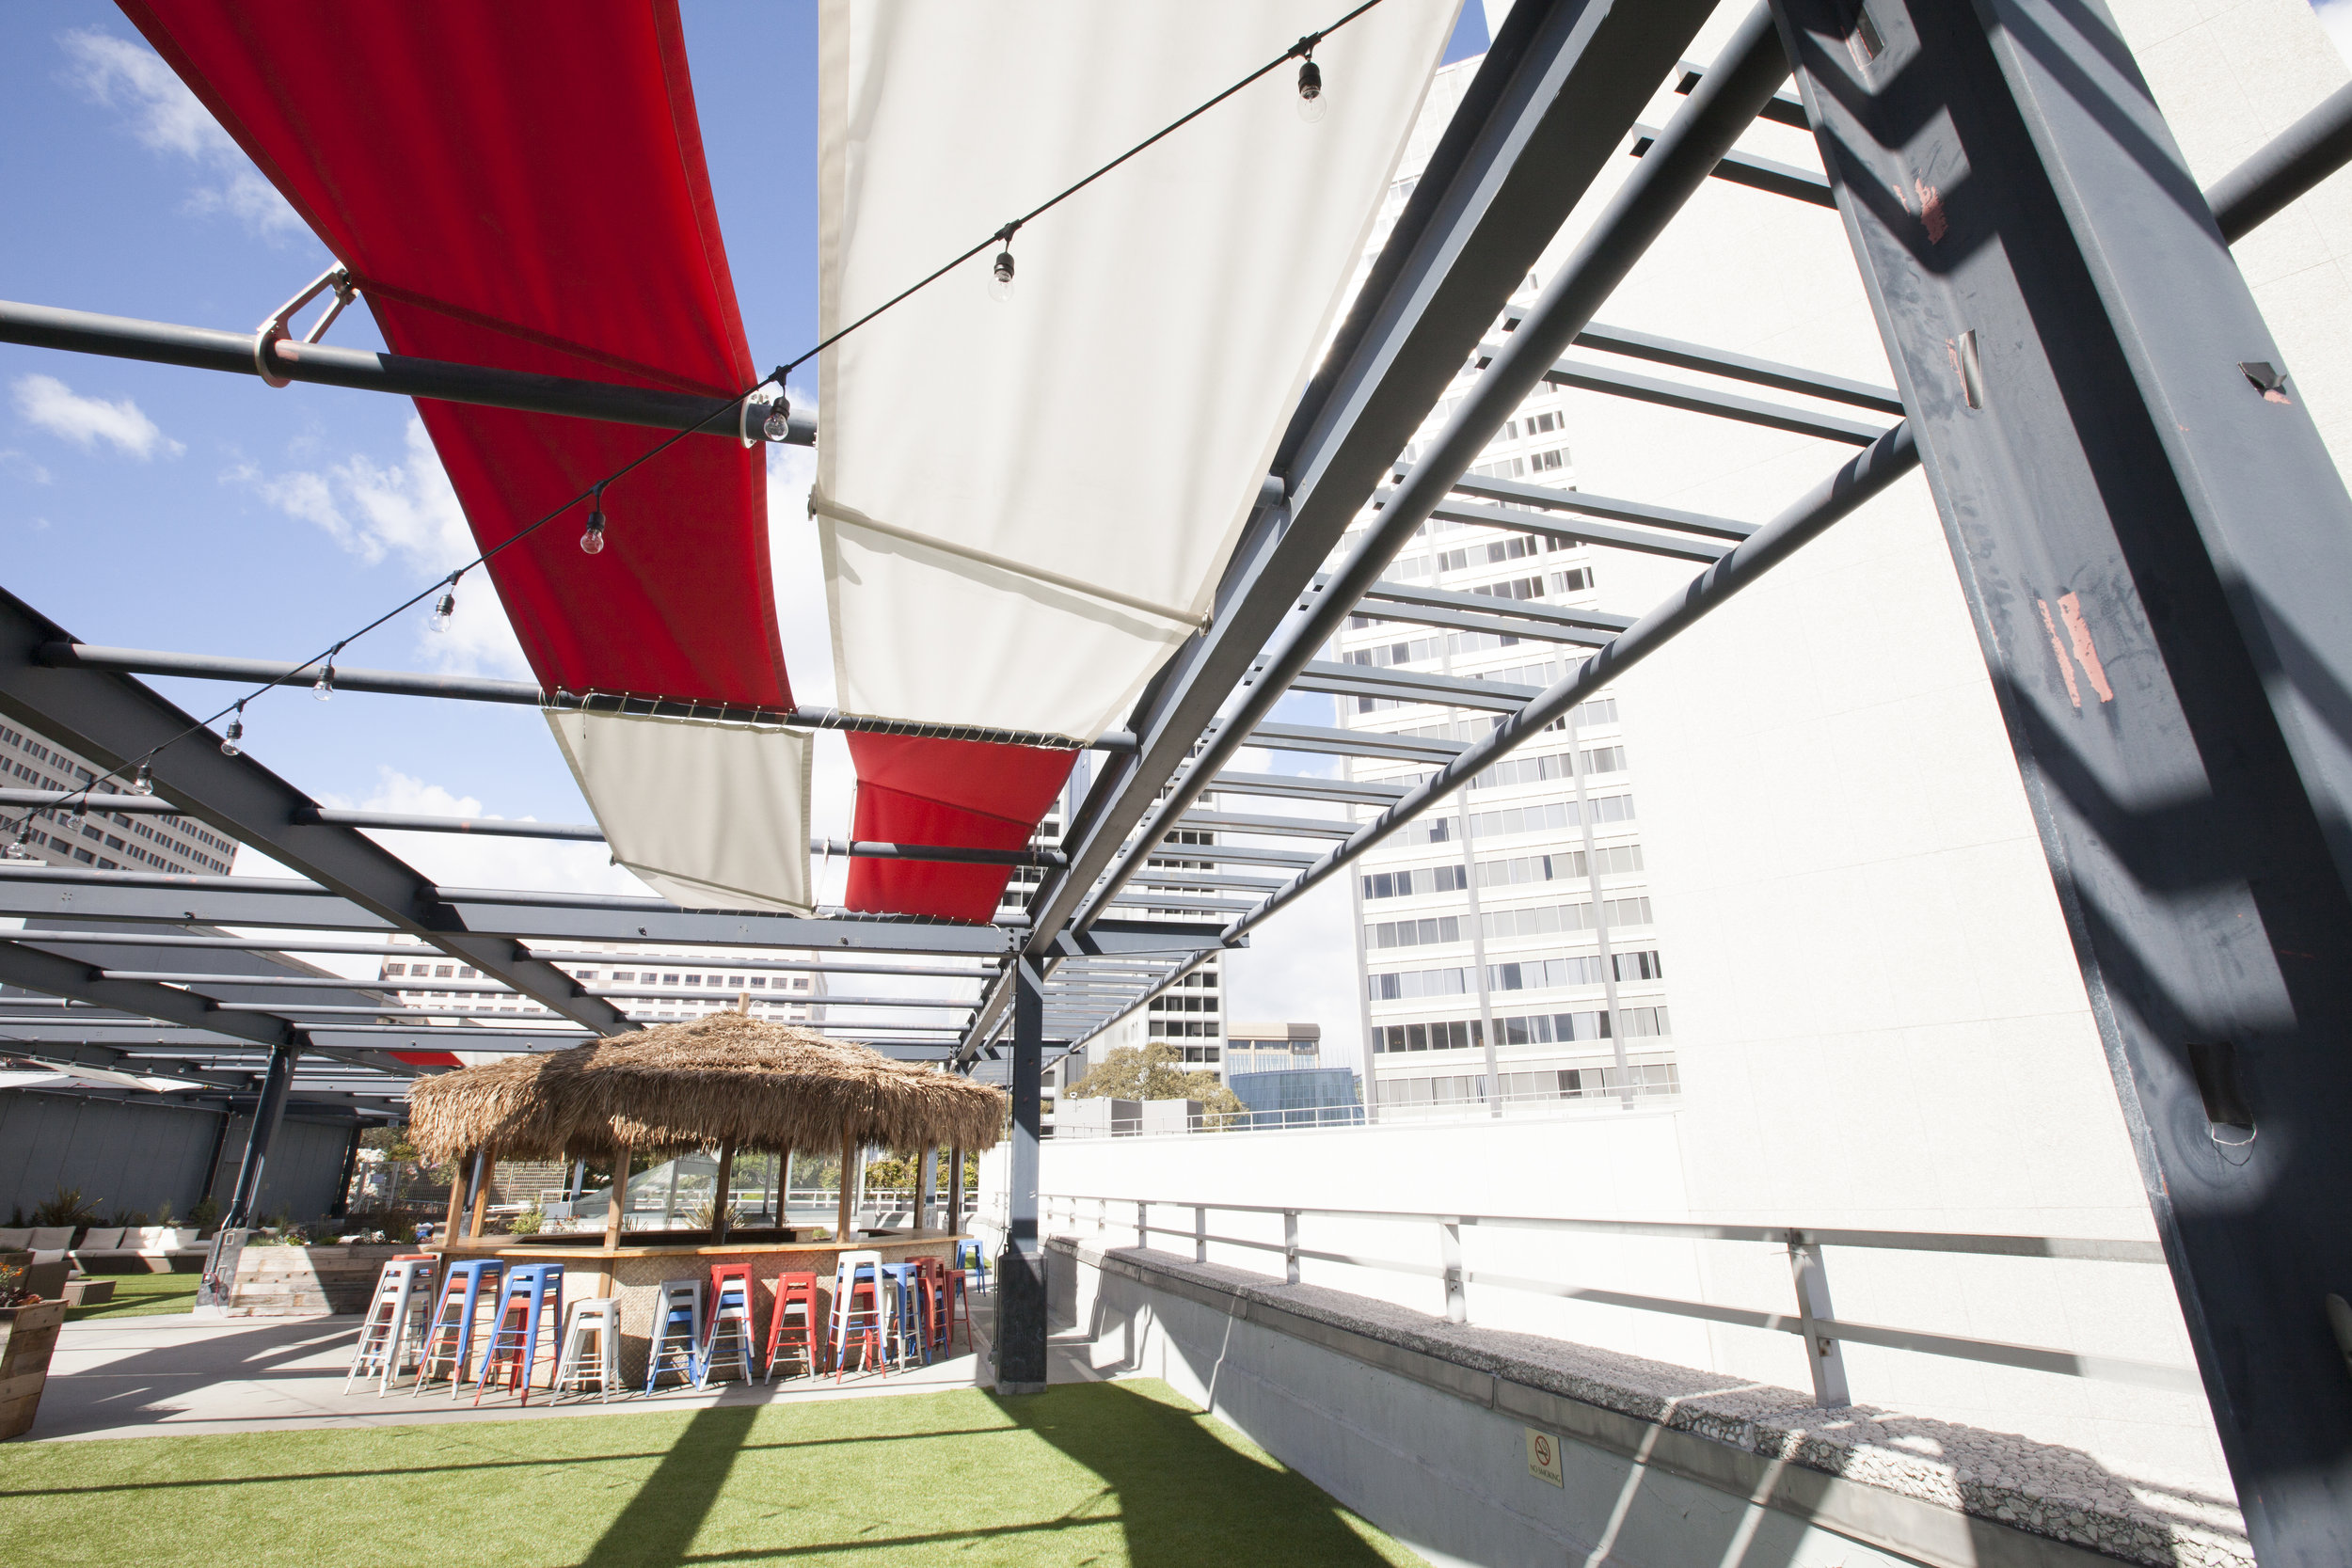 We designed an awning hanging system in red and white. The brackets add angles to the awnings allowing for different sun/shade options and visual interest.